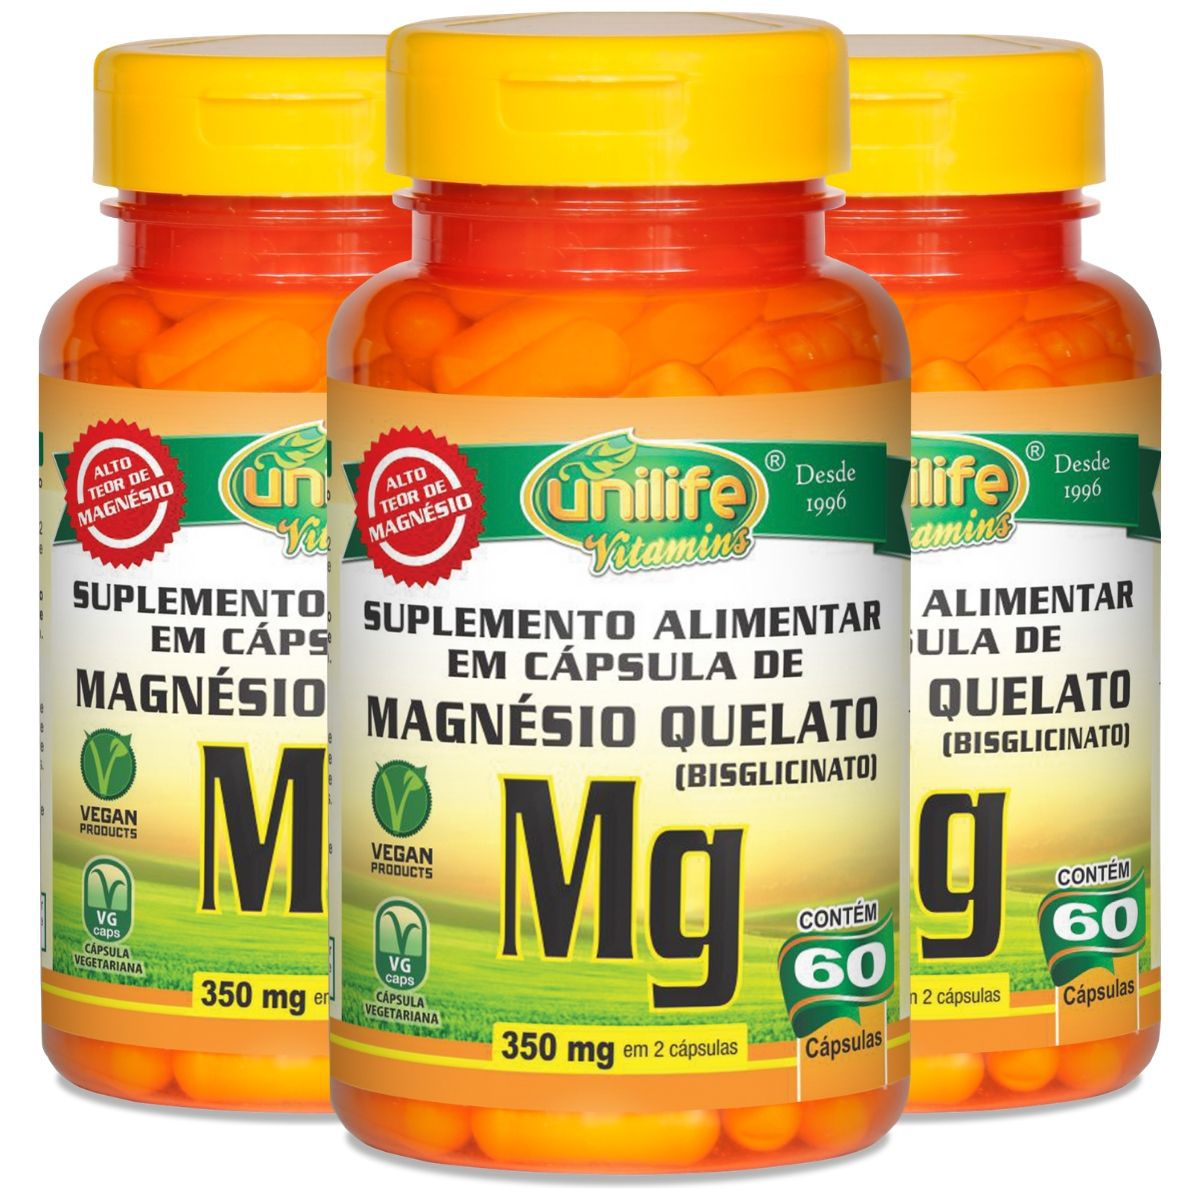 Kit 3 Magnésio Quelato 700mg 60 Cápsulas - Unilife